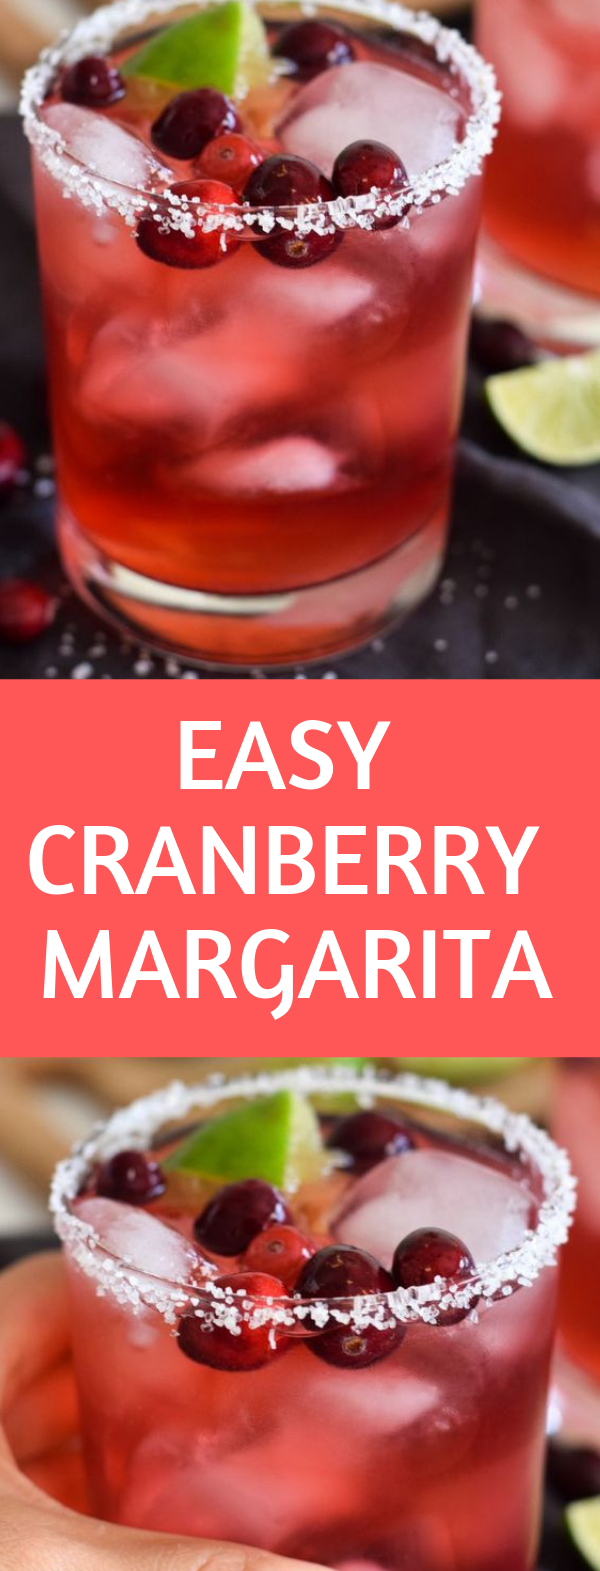 Easy Cranberry Margarita #drink #margarita